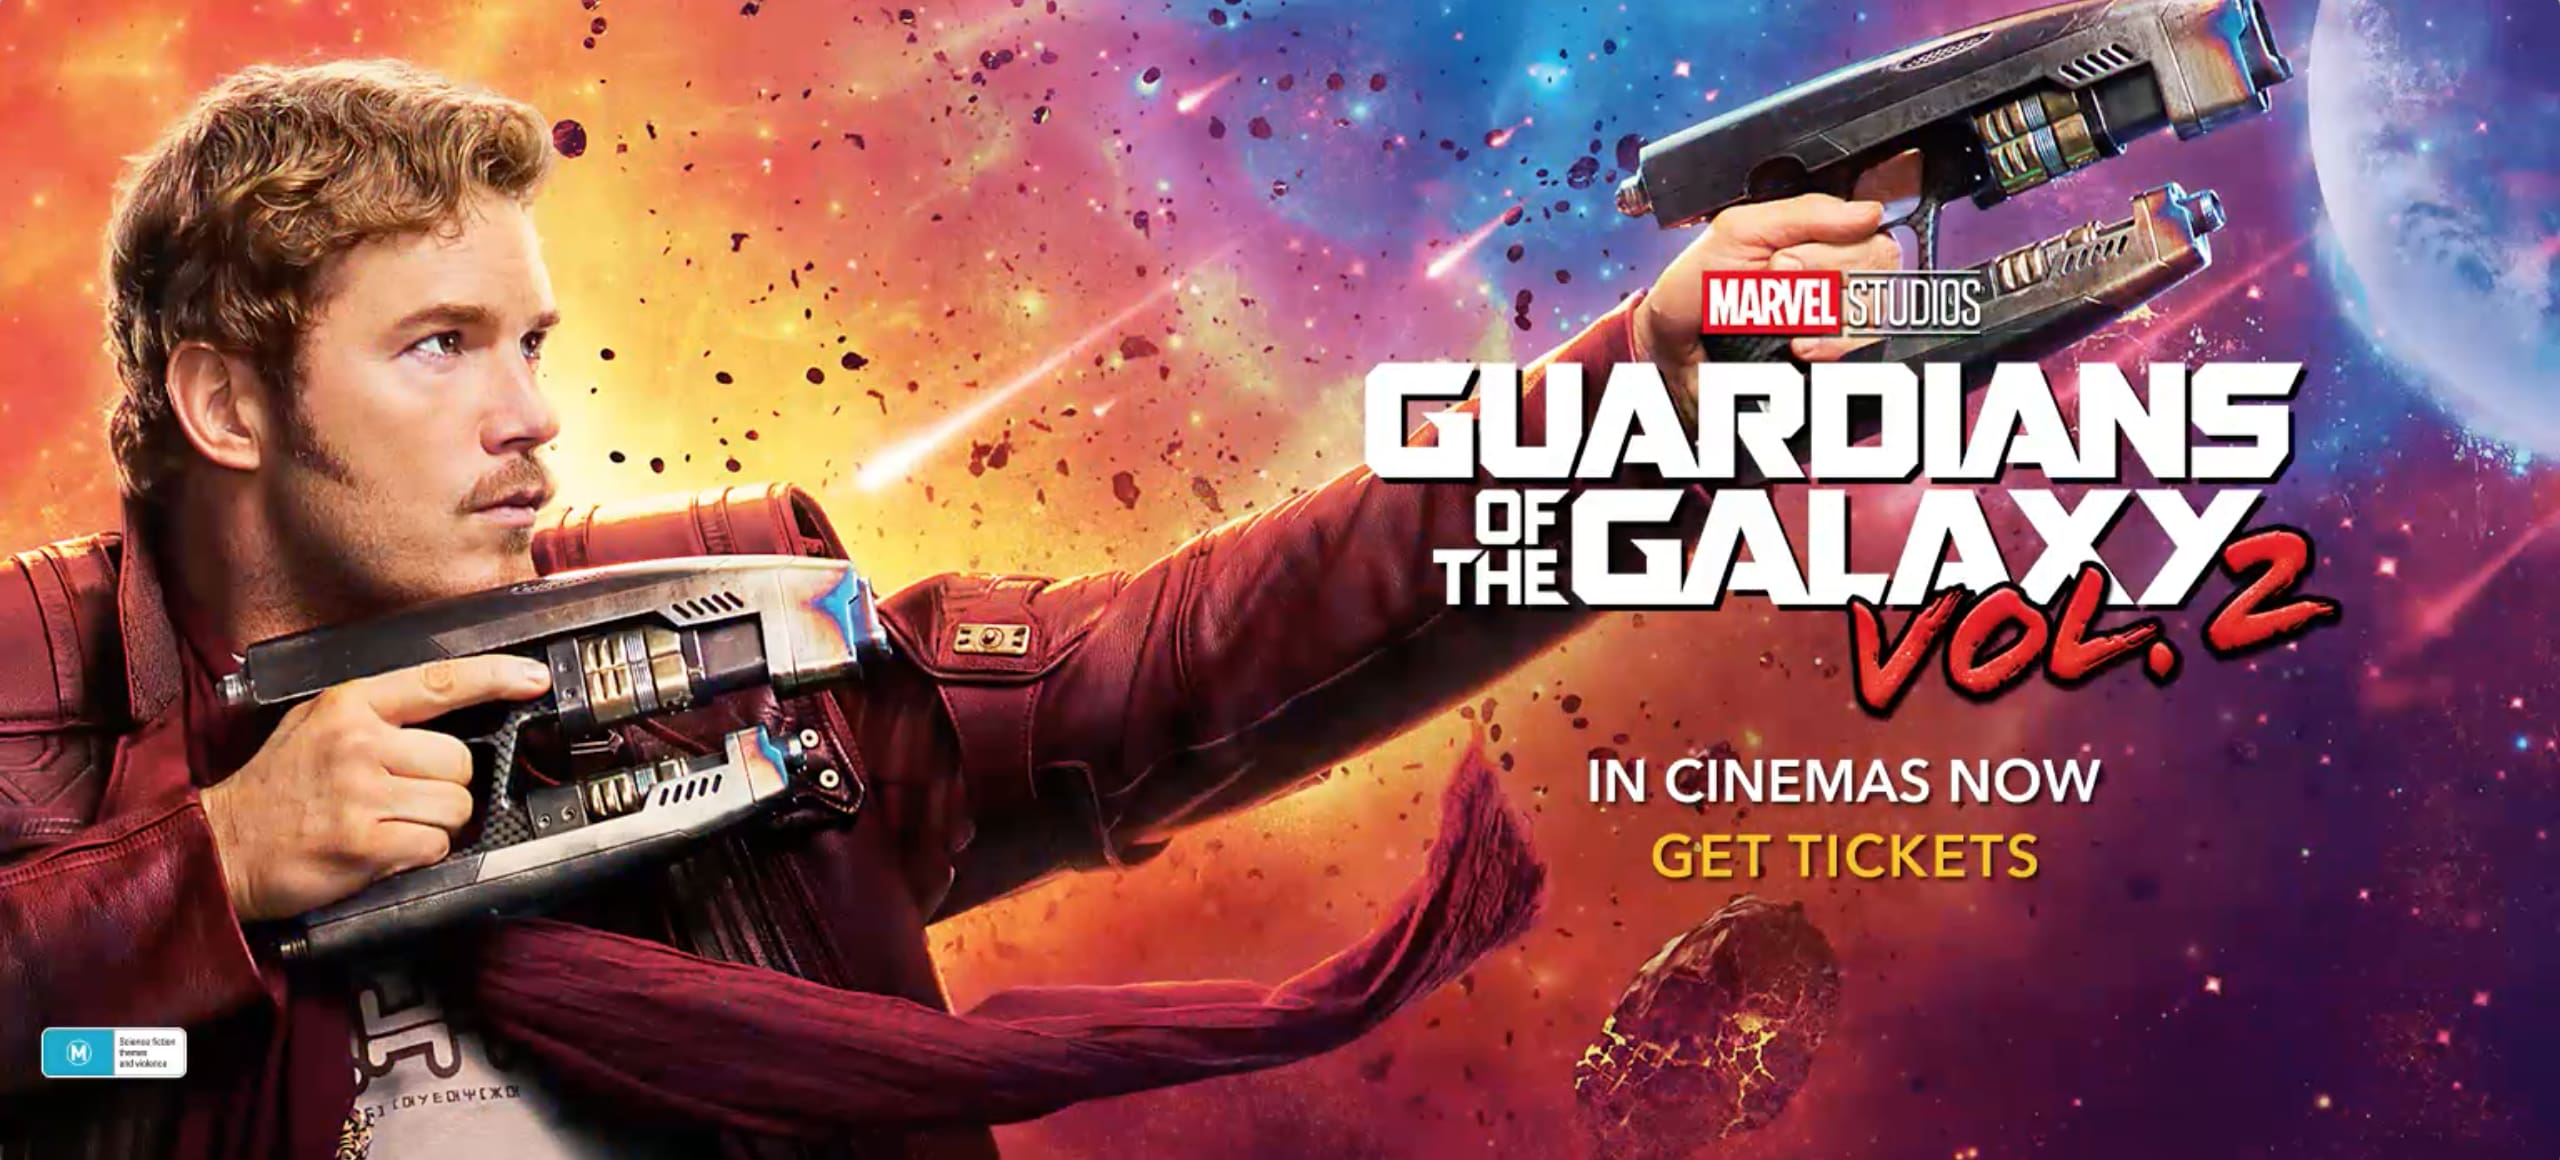 GOTG2 - Pre Buy Tickets - Desktop  Video - Homepage - Hero AU